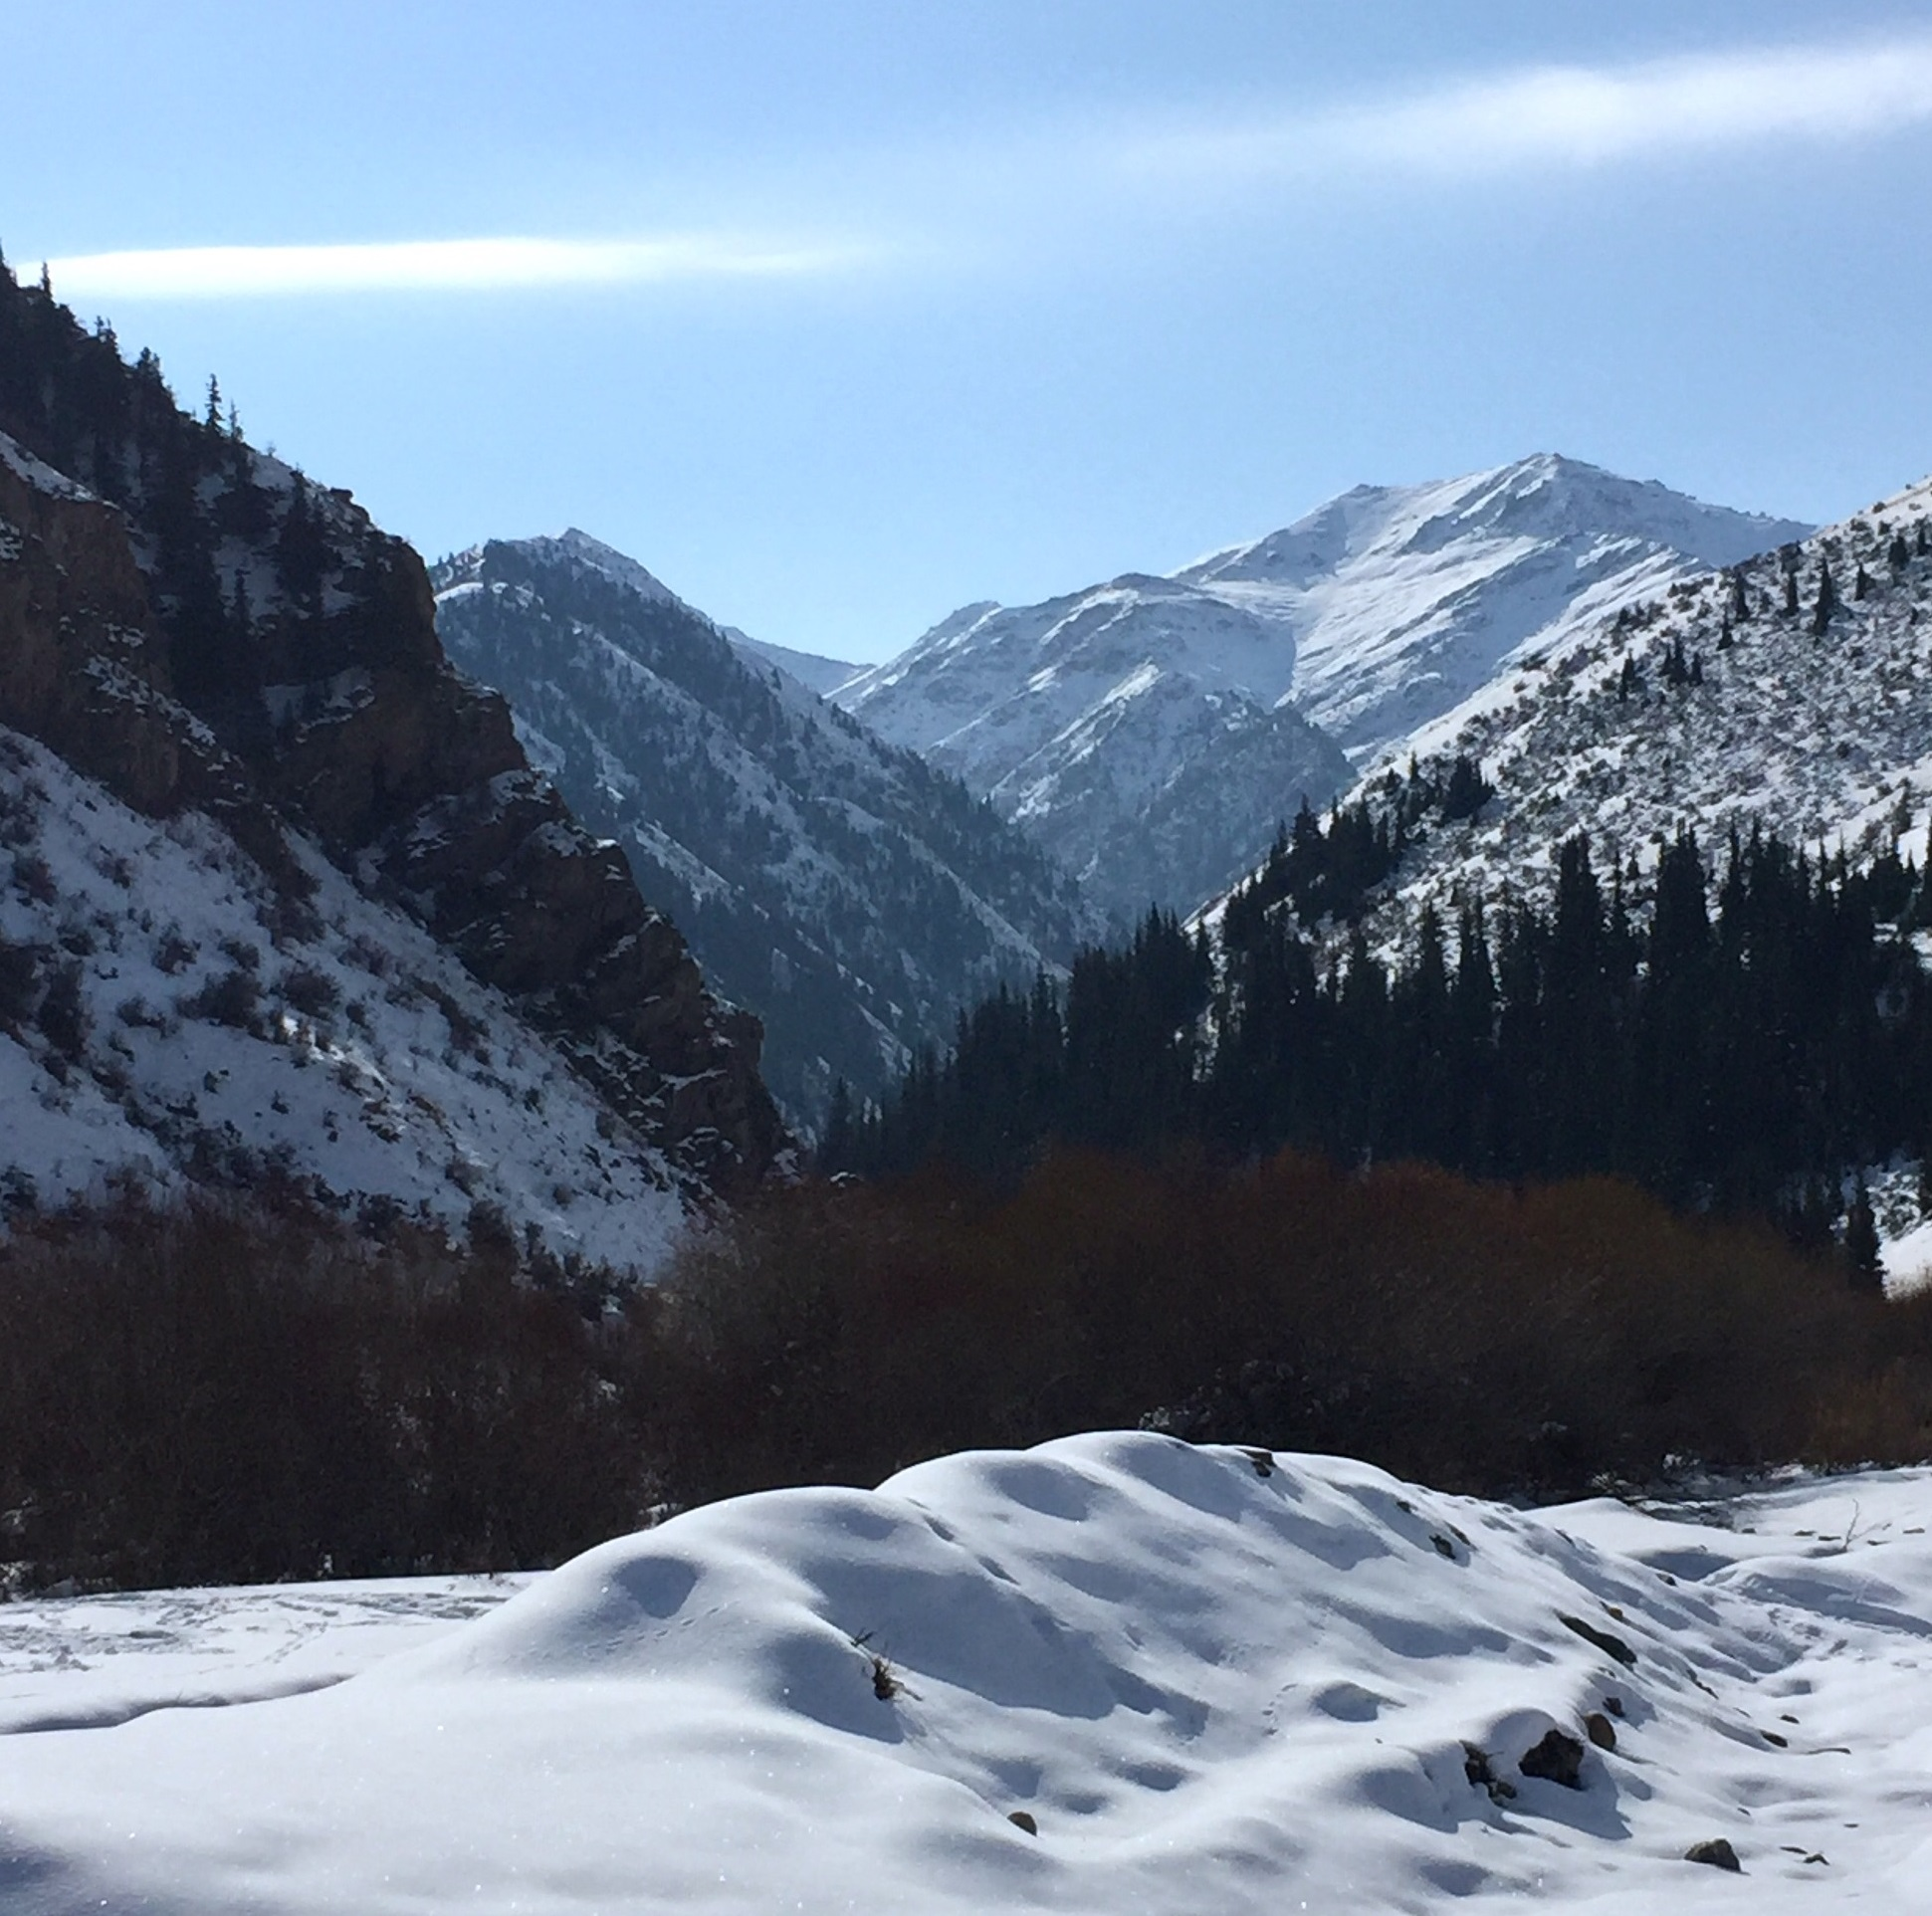 Tien Shan mountains, Salken Tor National Park, November 2016 (source: B. Orlove)